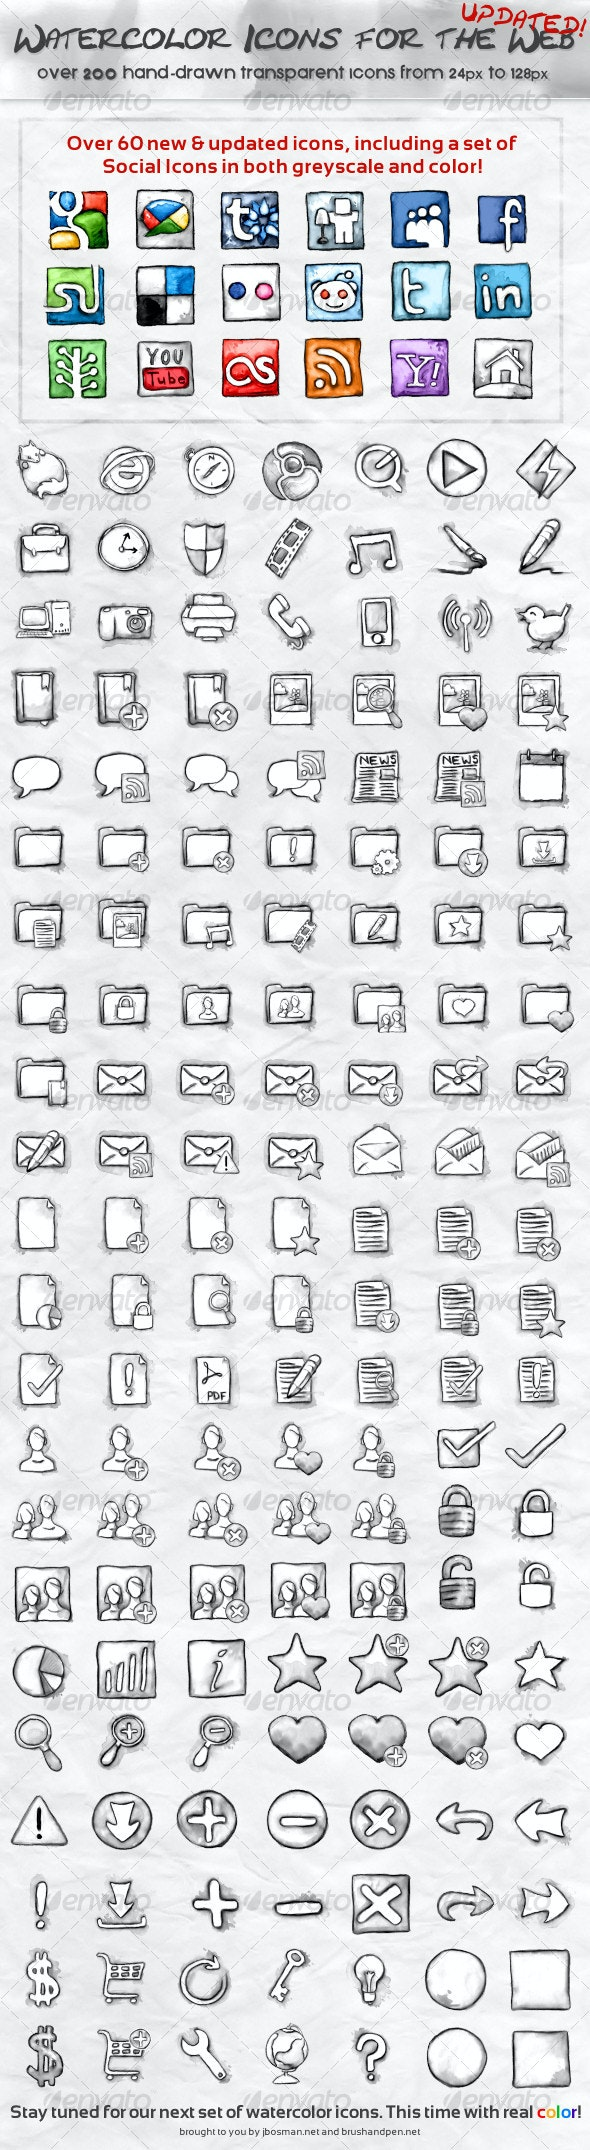 Watercolor Icons for the Web - Black & White - Web Icons